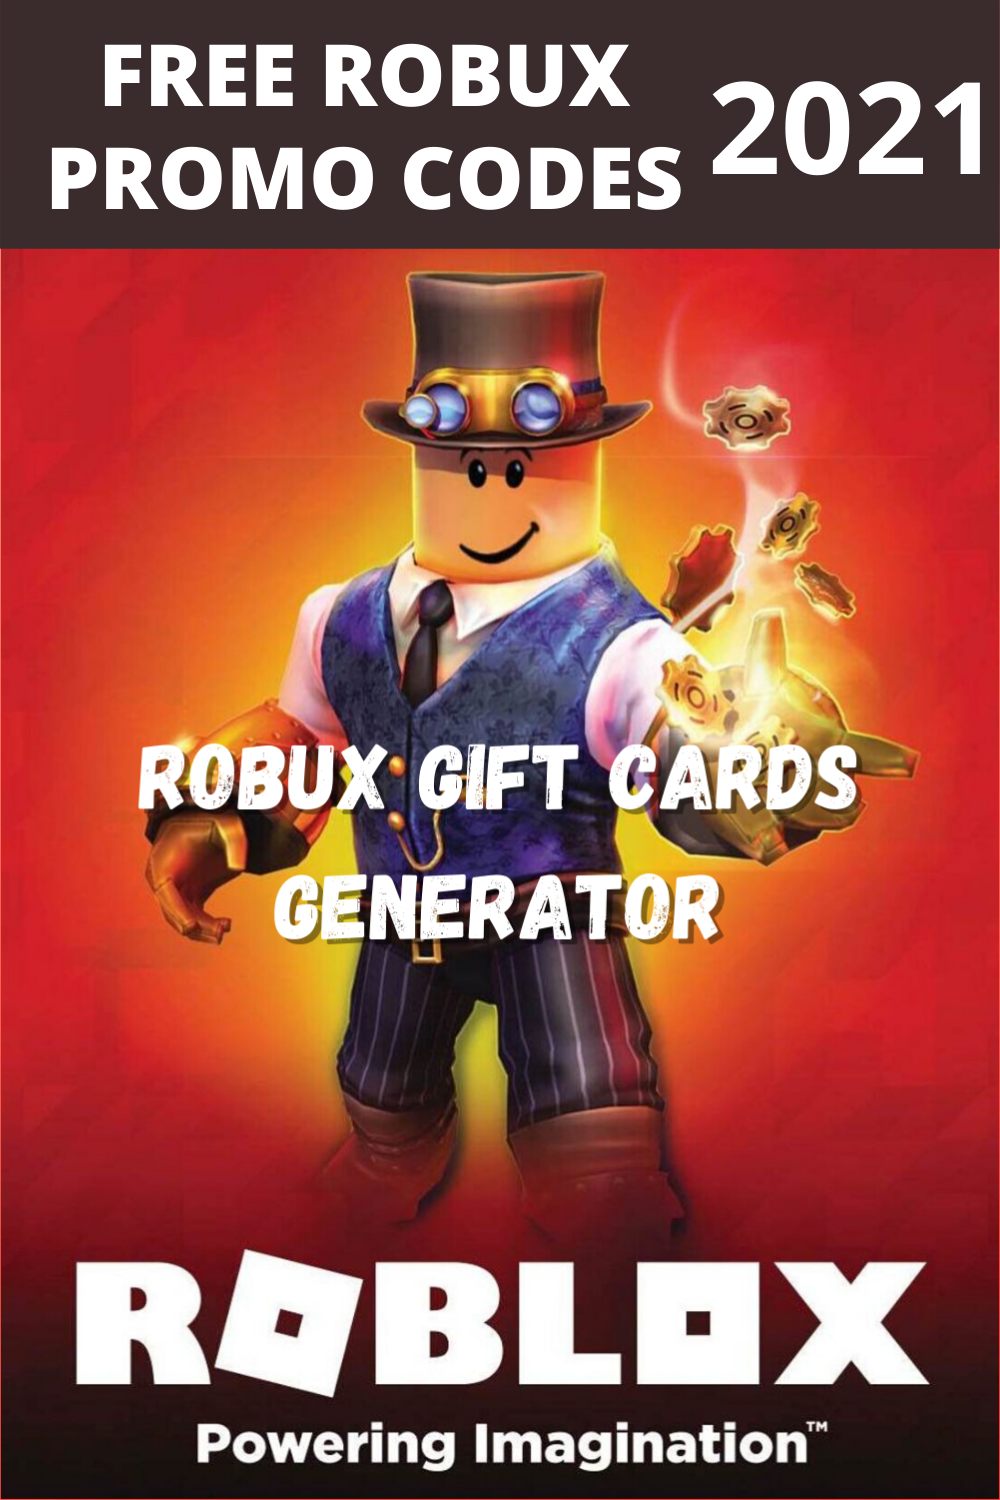 Free Robux Promo Codes 2021 Robux Codes Free 2021 Real Robux Gift Card Roblox Codes In 2021 Roblox Gifts Roblox Gift Card Generator